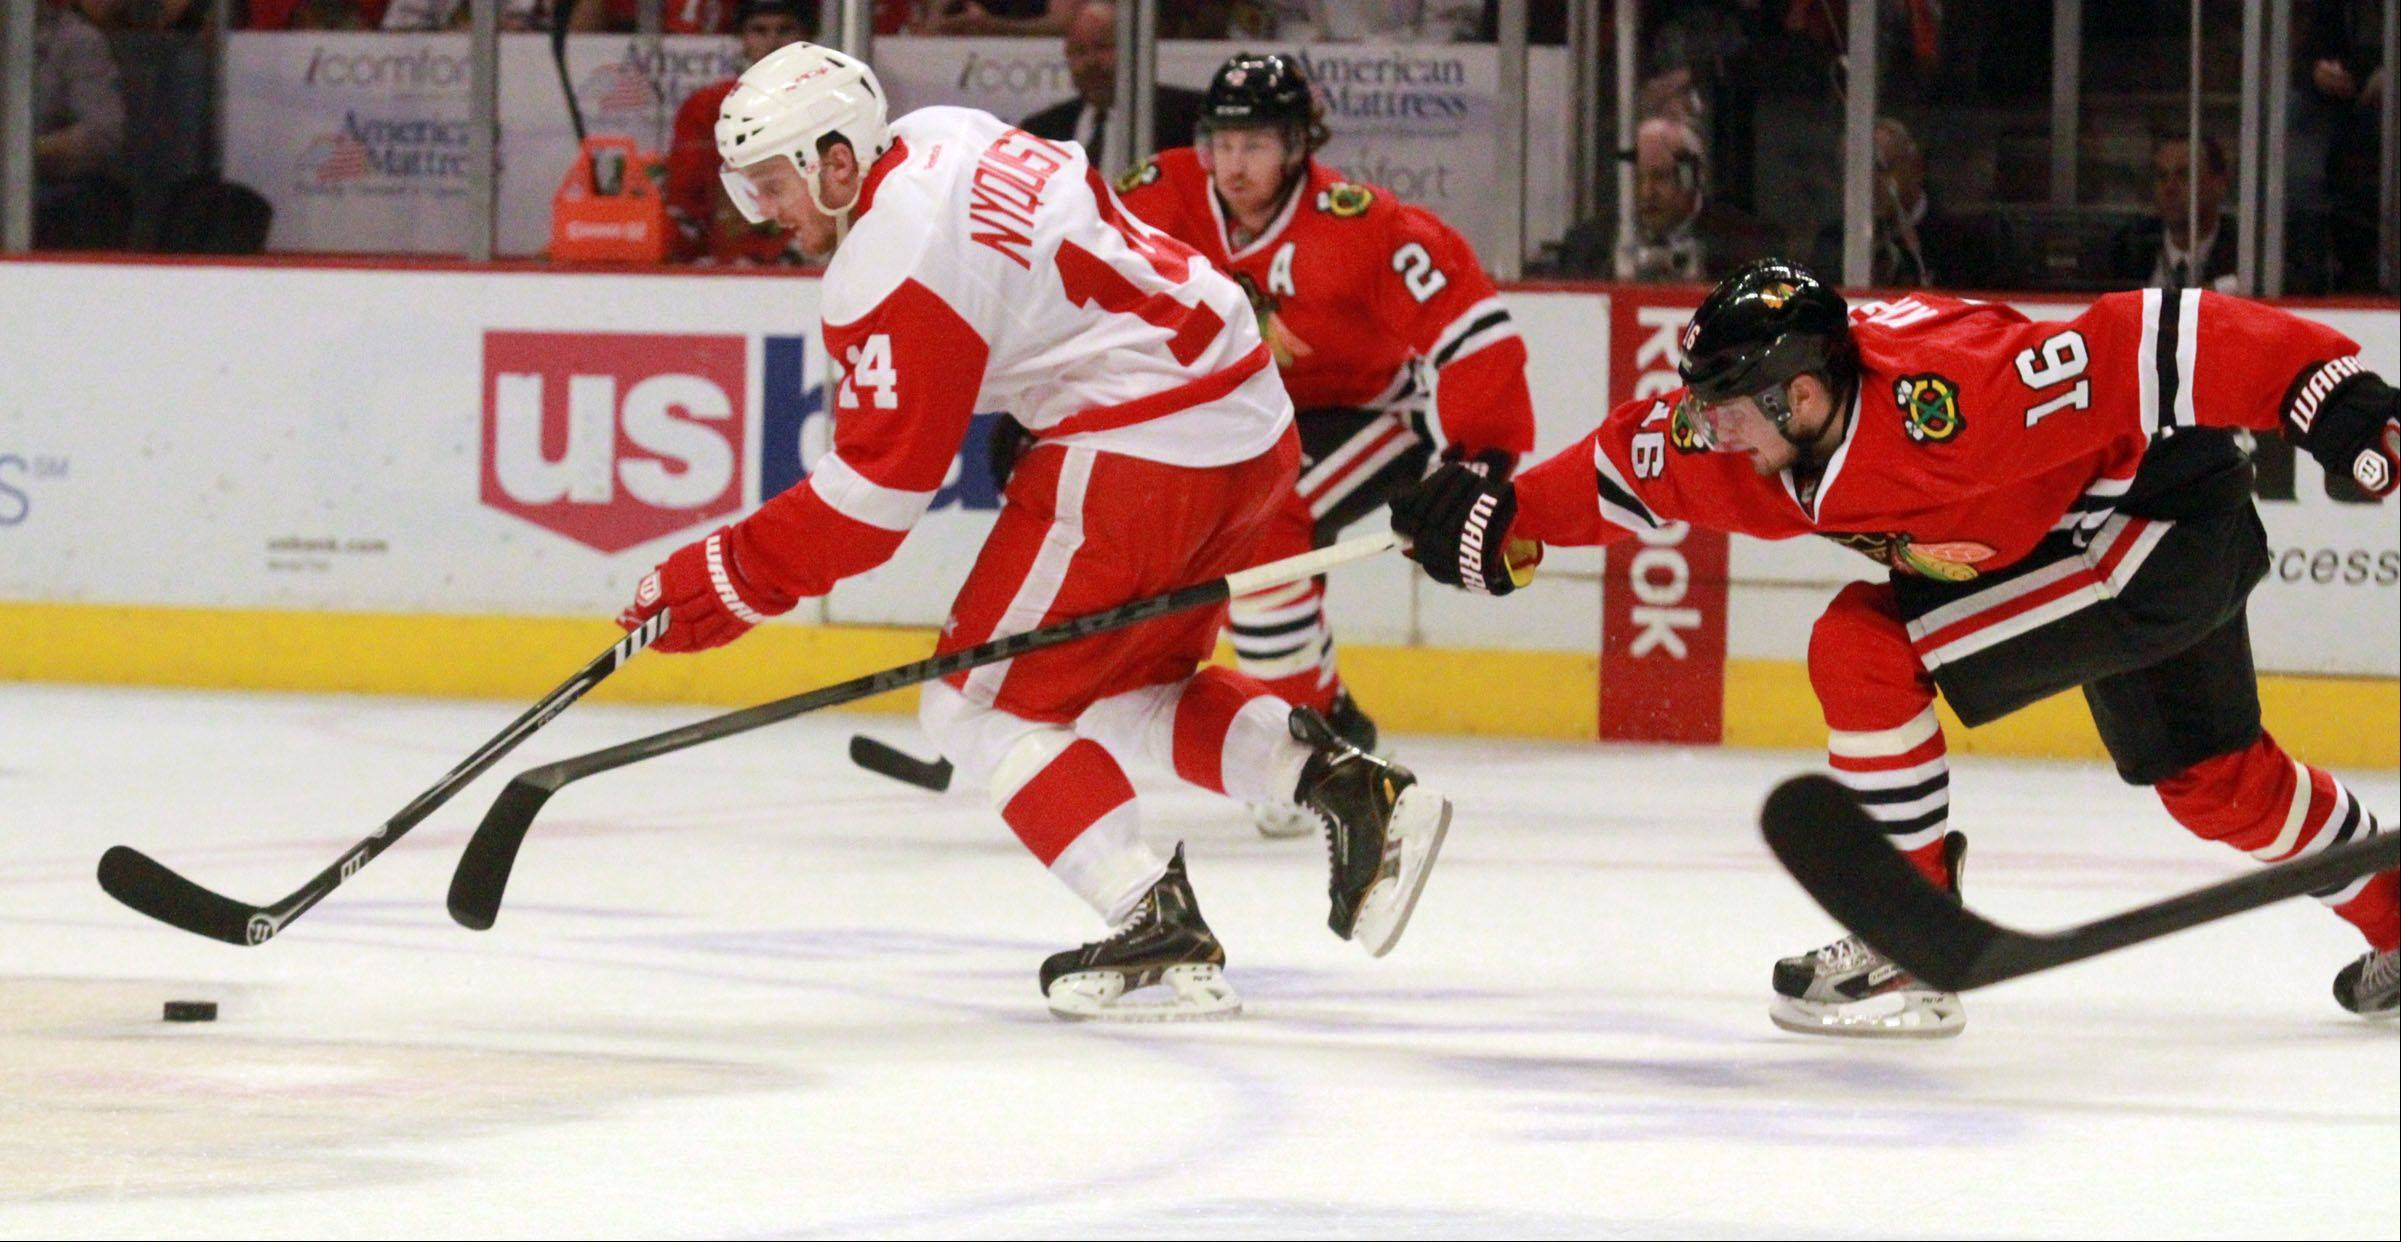 Center Marcus Kruger chases down Detroit Red Wings center Gustav Nyquist during the first period of game 2.